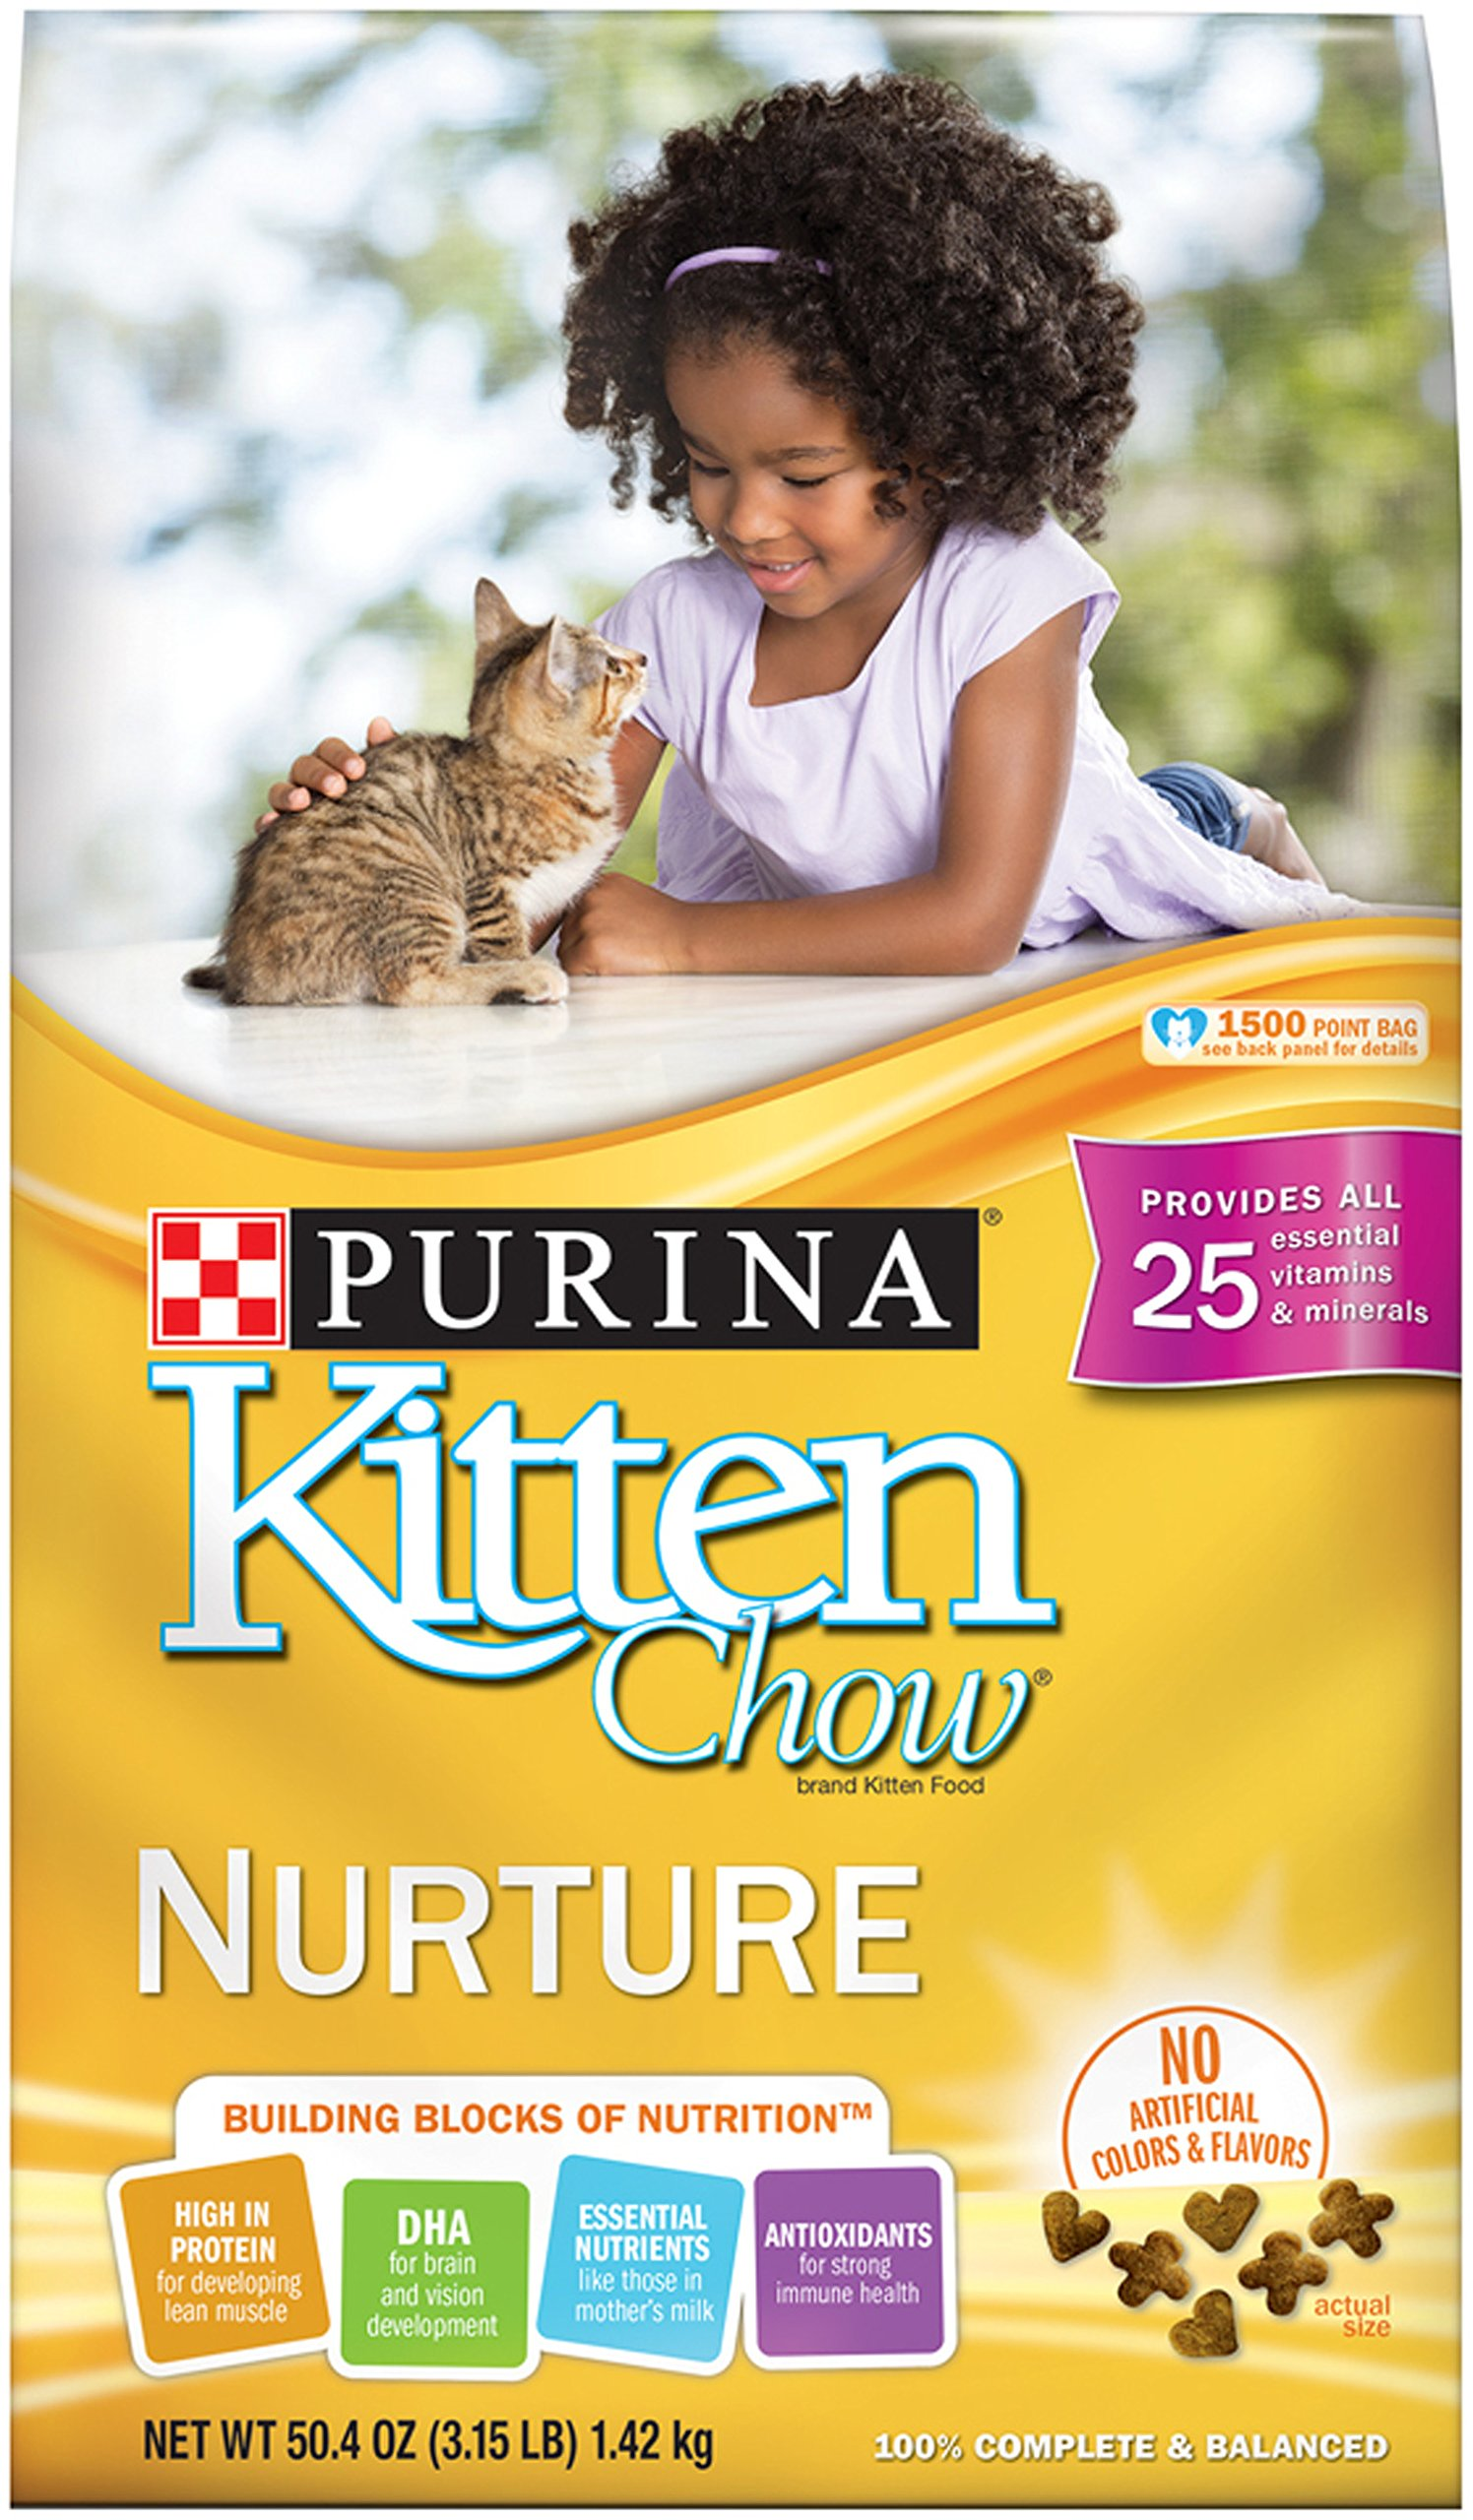 Purina Kitten Chow Dry Kitten Food, Nurture, 3.15 Pound Bag, Pack of 6 by Purina Cat Chow